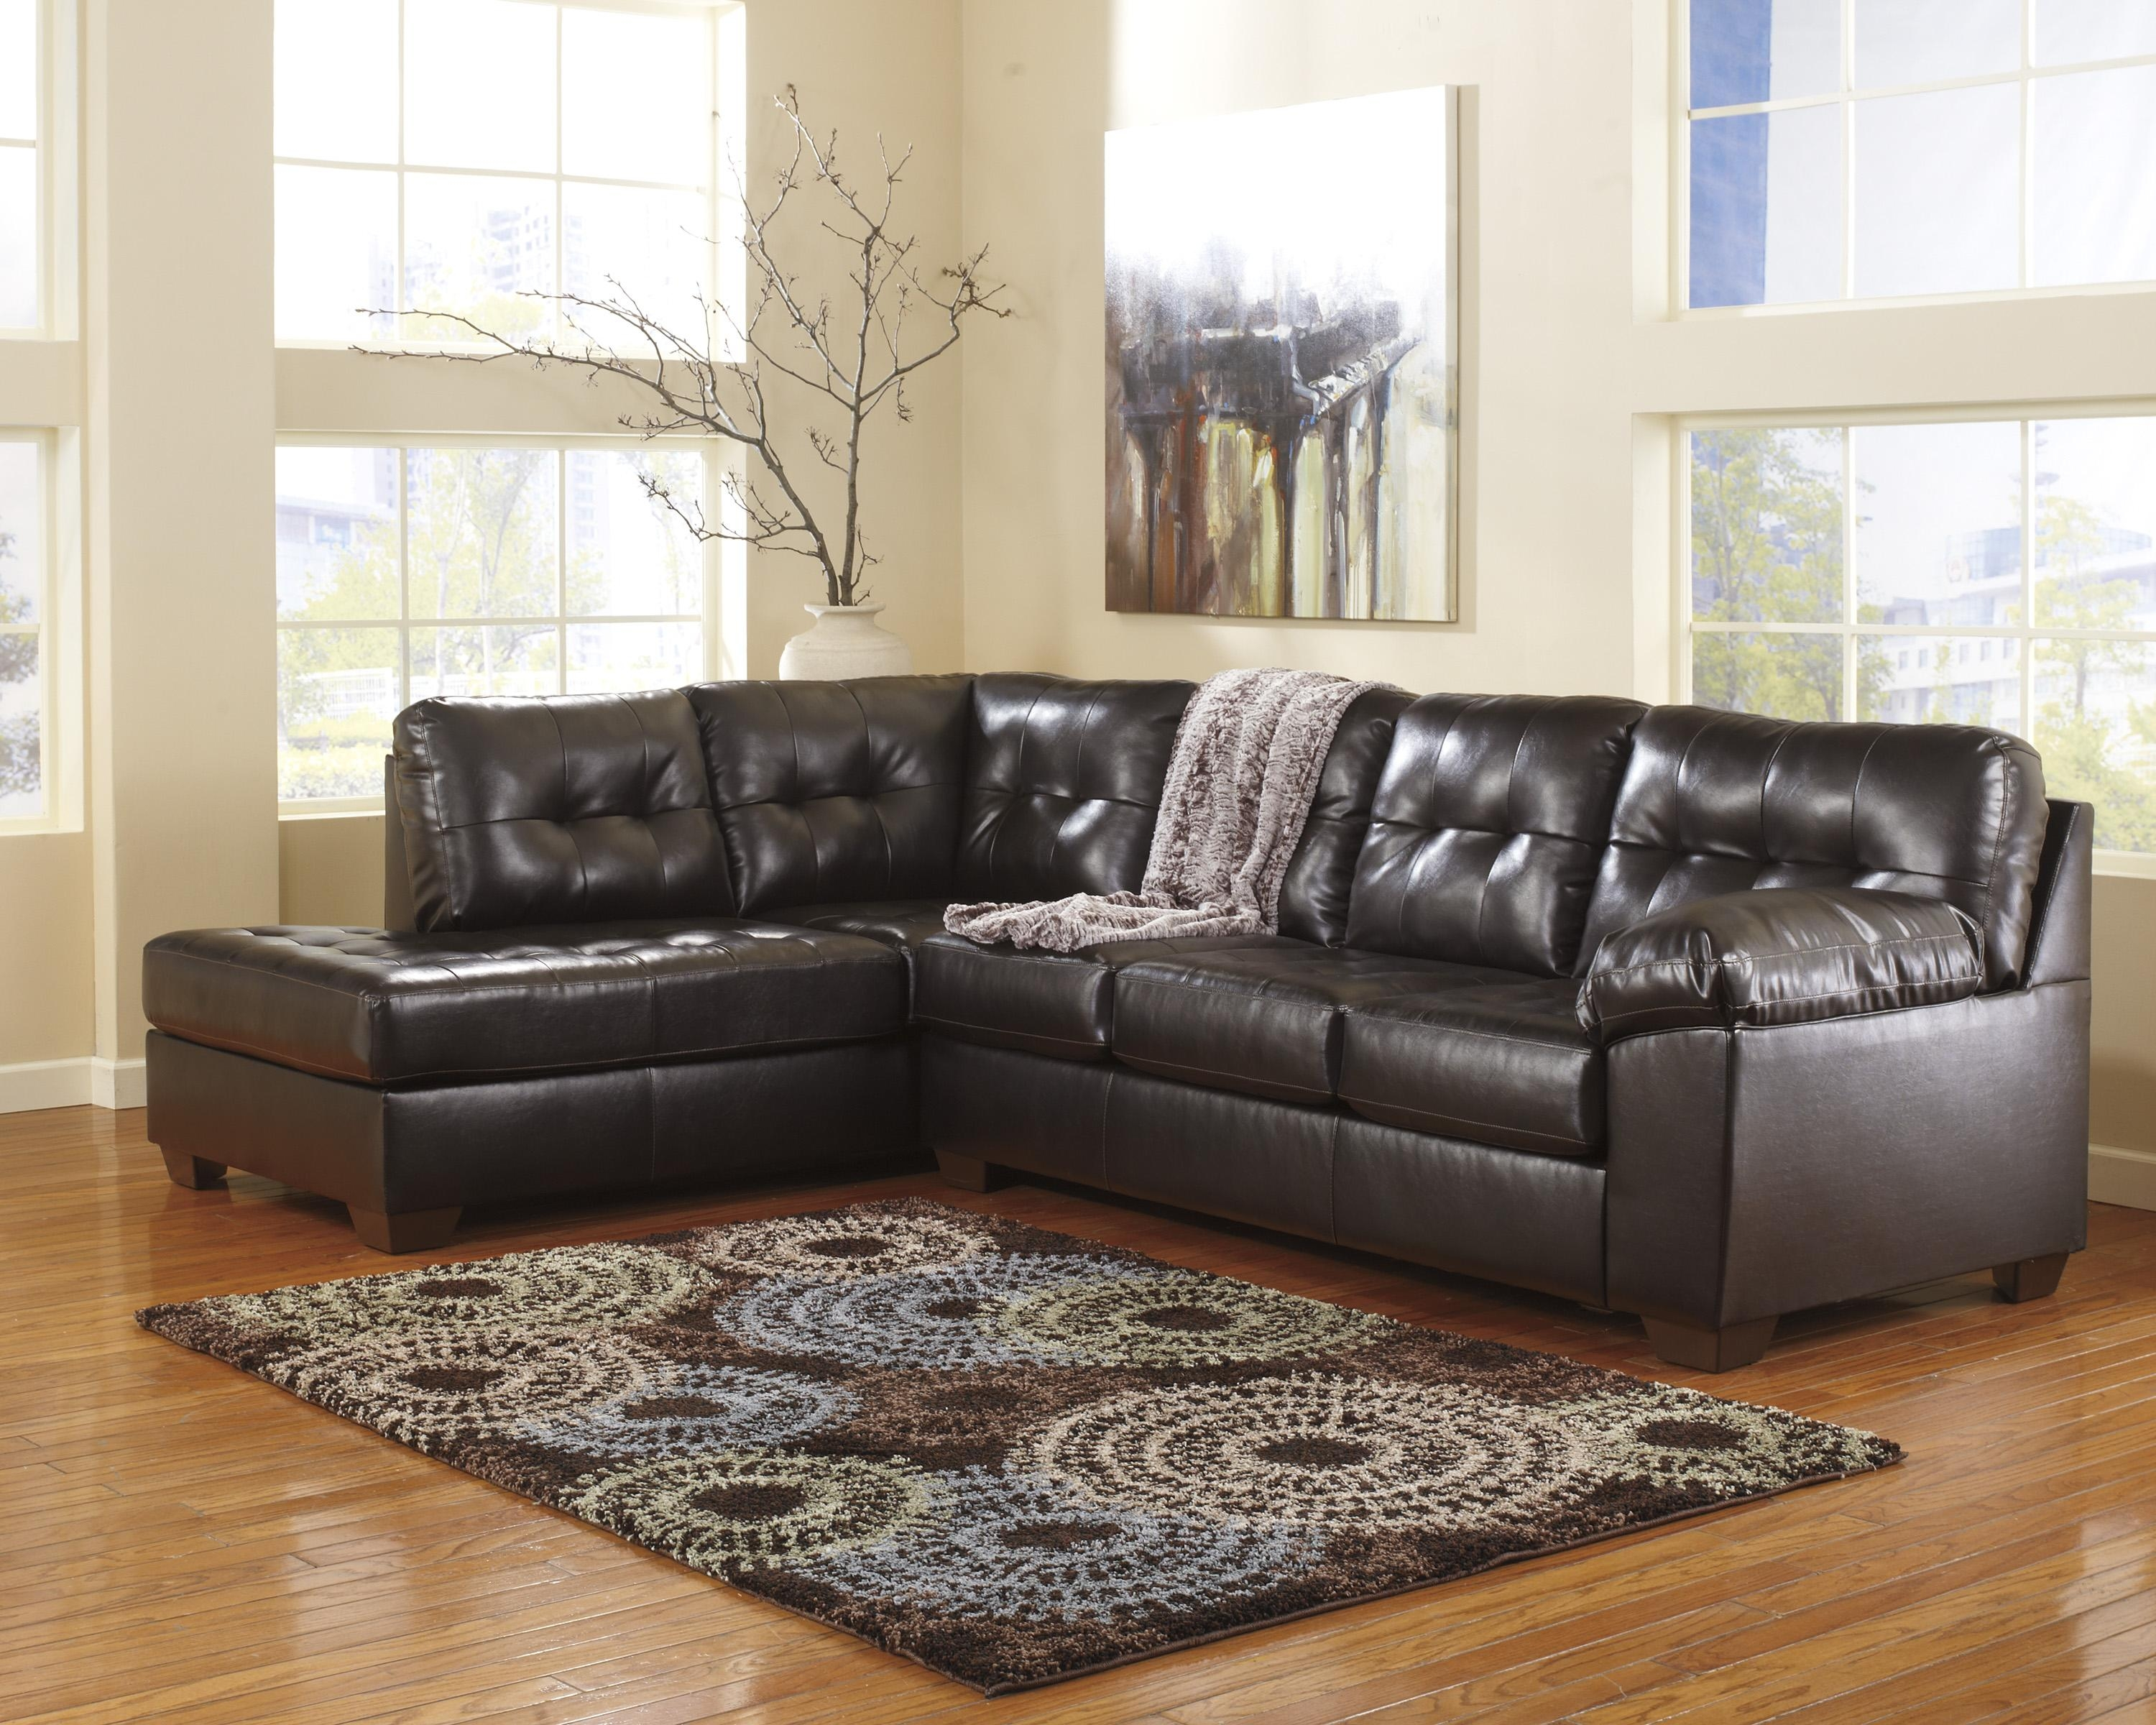 Ideas: Faux Leather Sectional Sofa Ashley And Ashley Sectional Regarding Ashley Faux Leather Sectional Sofas (View 10 of 20)